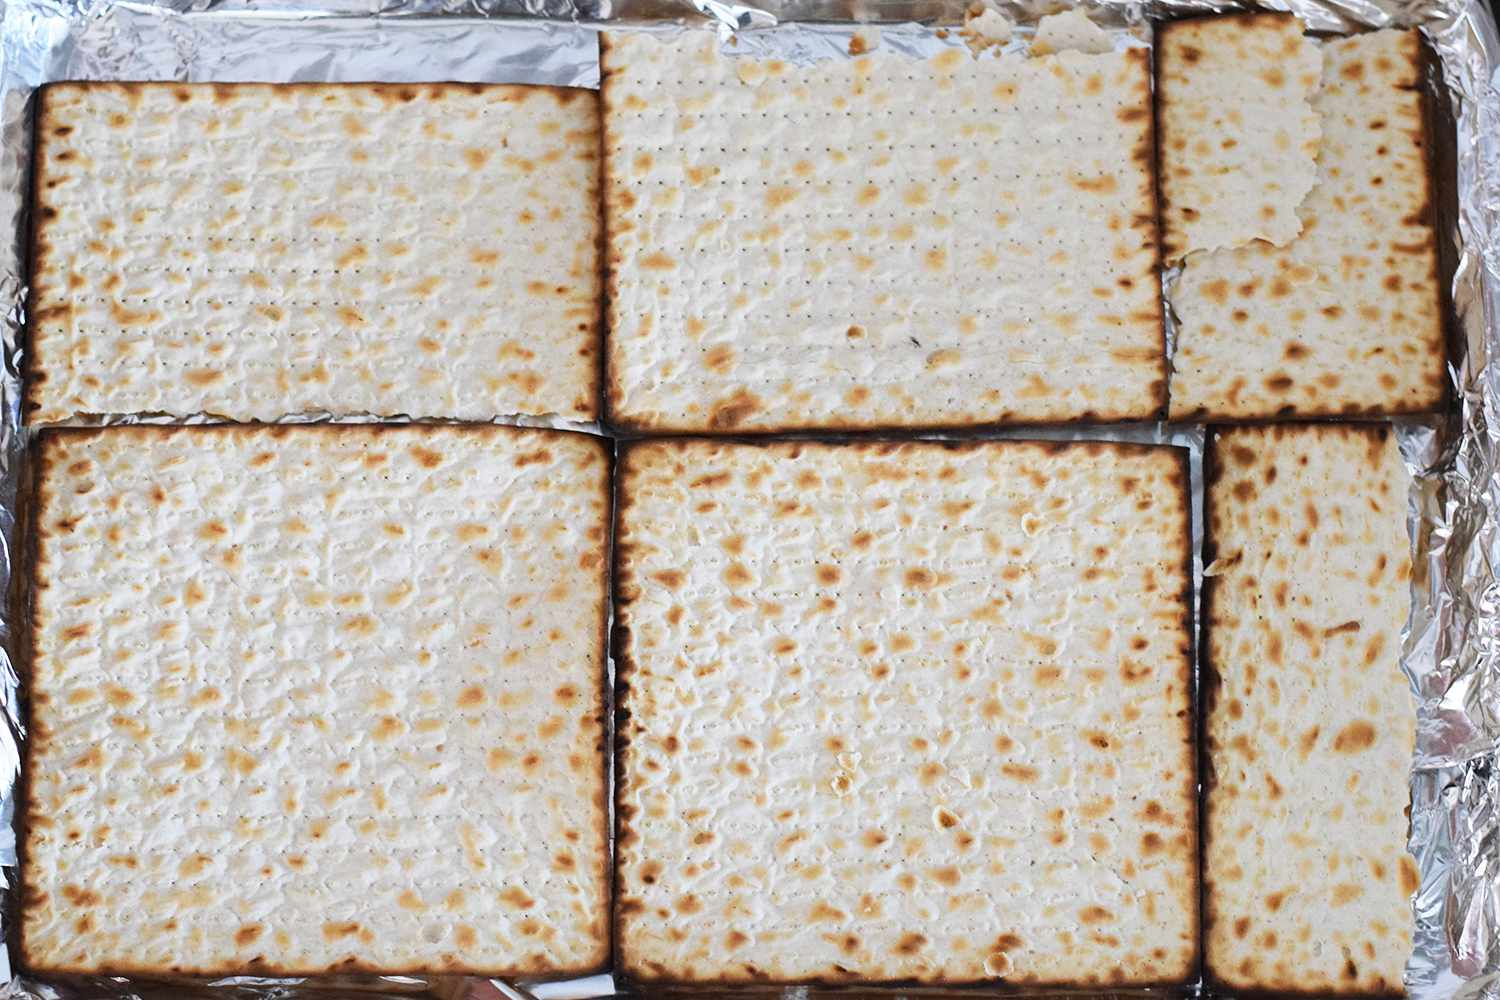 Matzo Crack - Lay out the matzo in one even layer